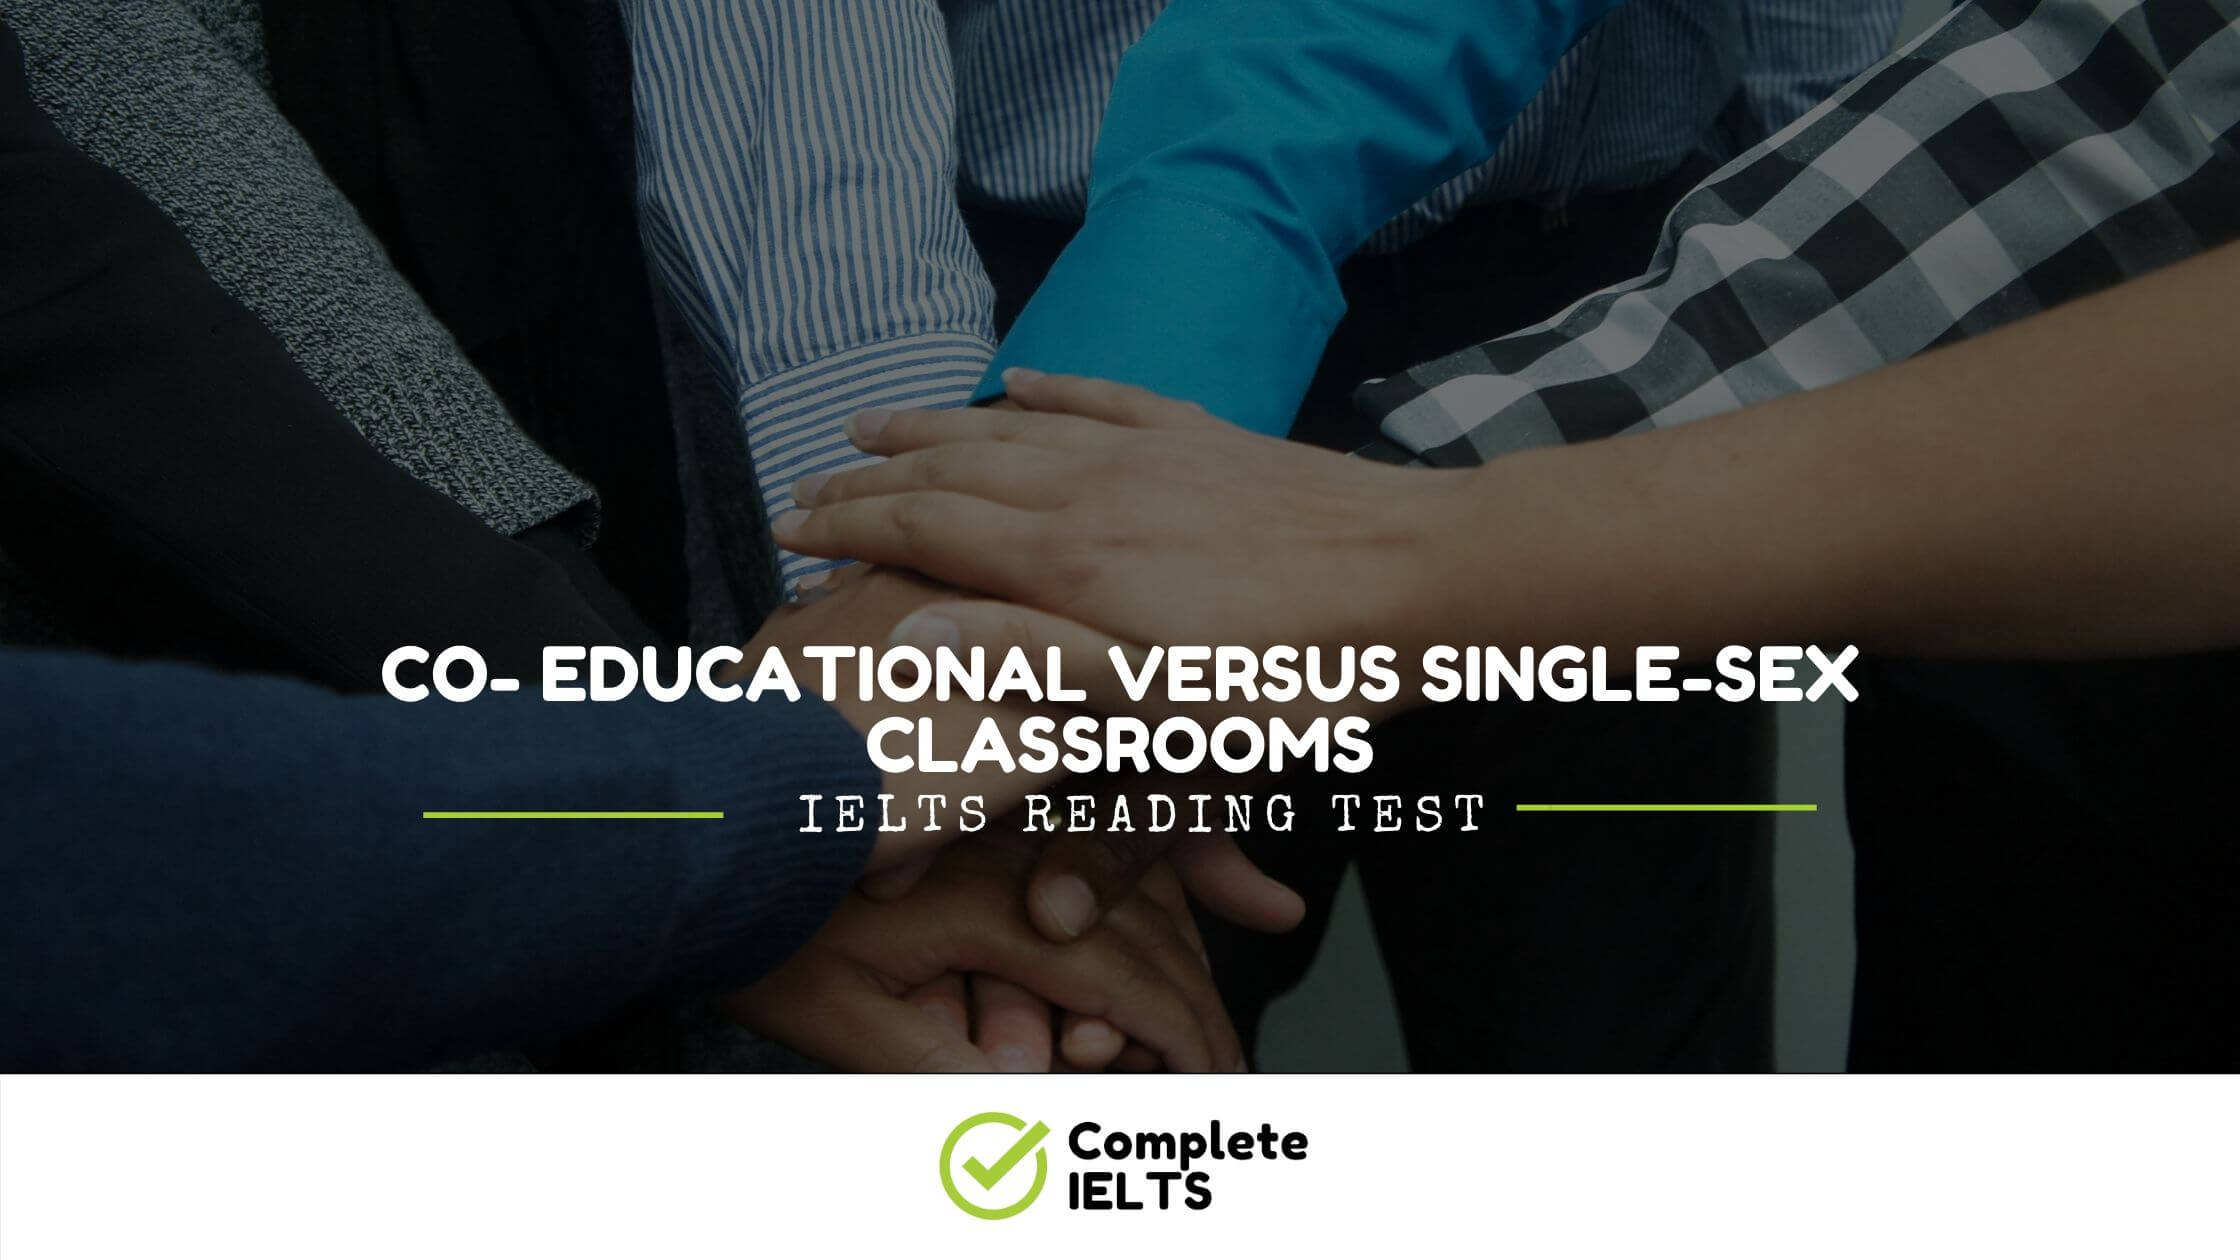 CO- EDUCATIONAL VERSUS SINGLE-SEX CLASSROOMS | IELTS Academic Reading Sample Question